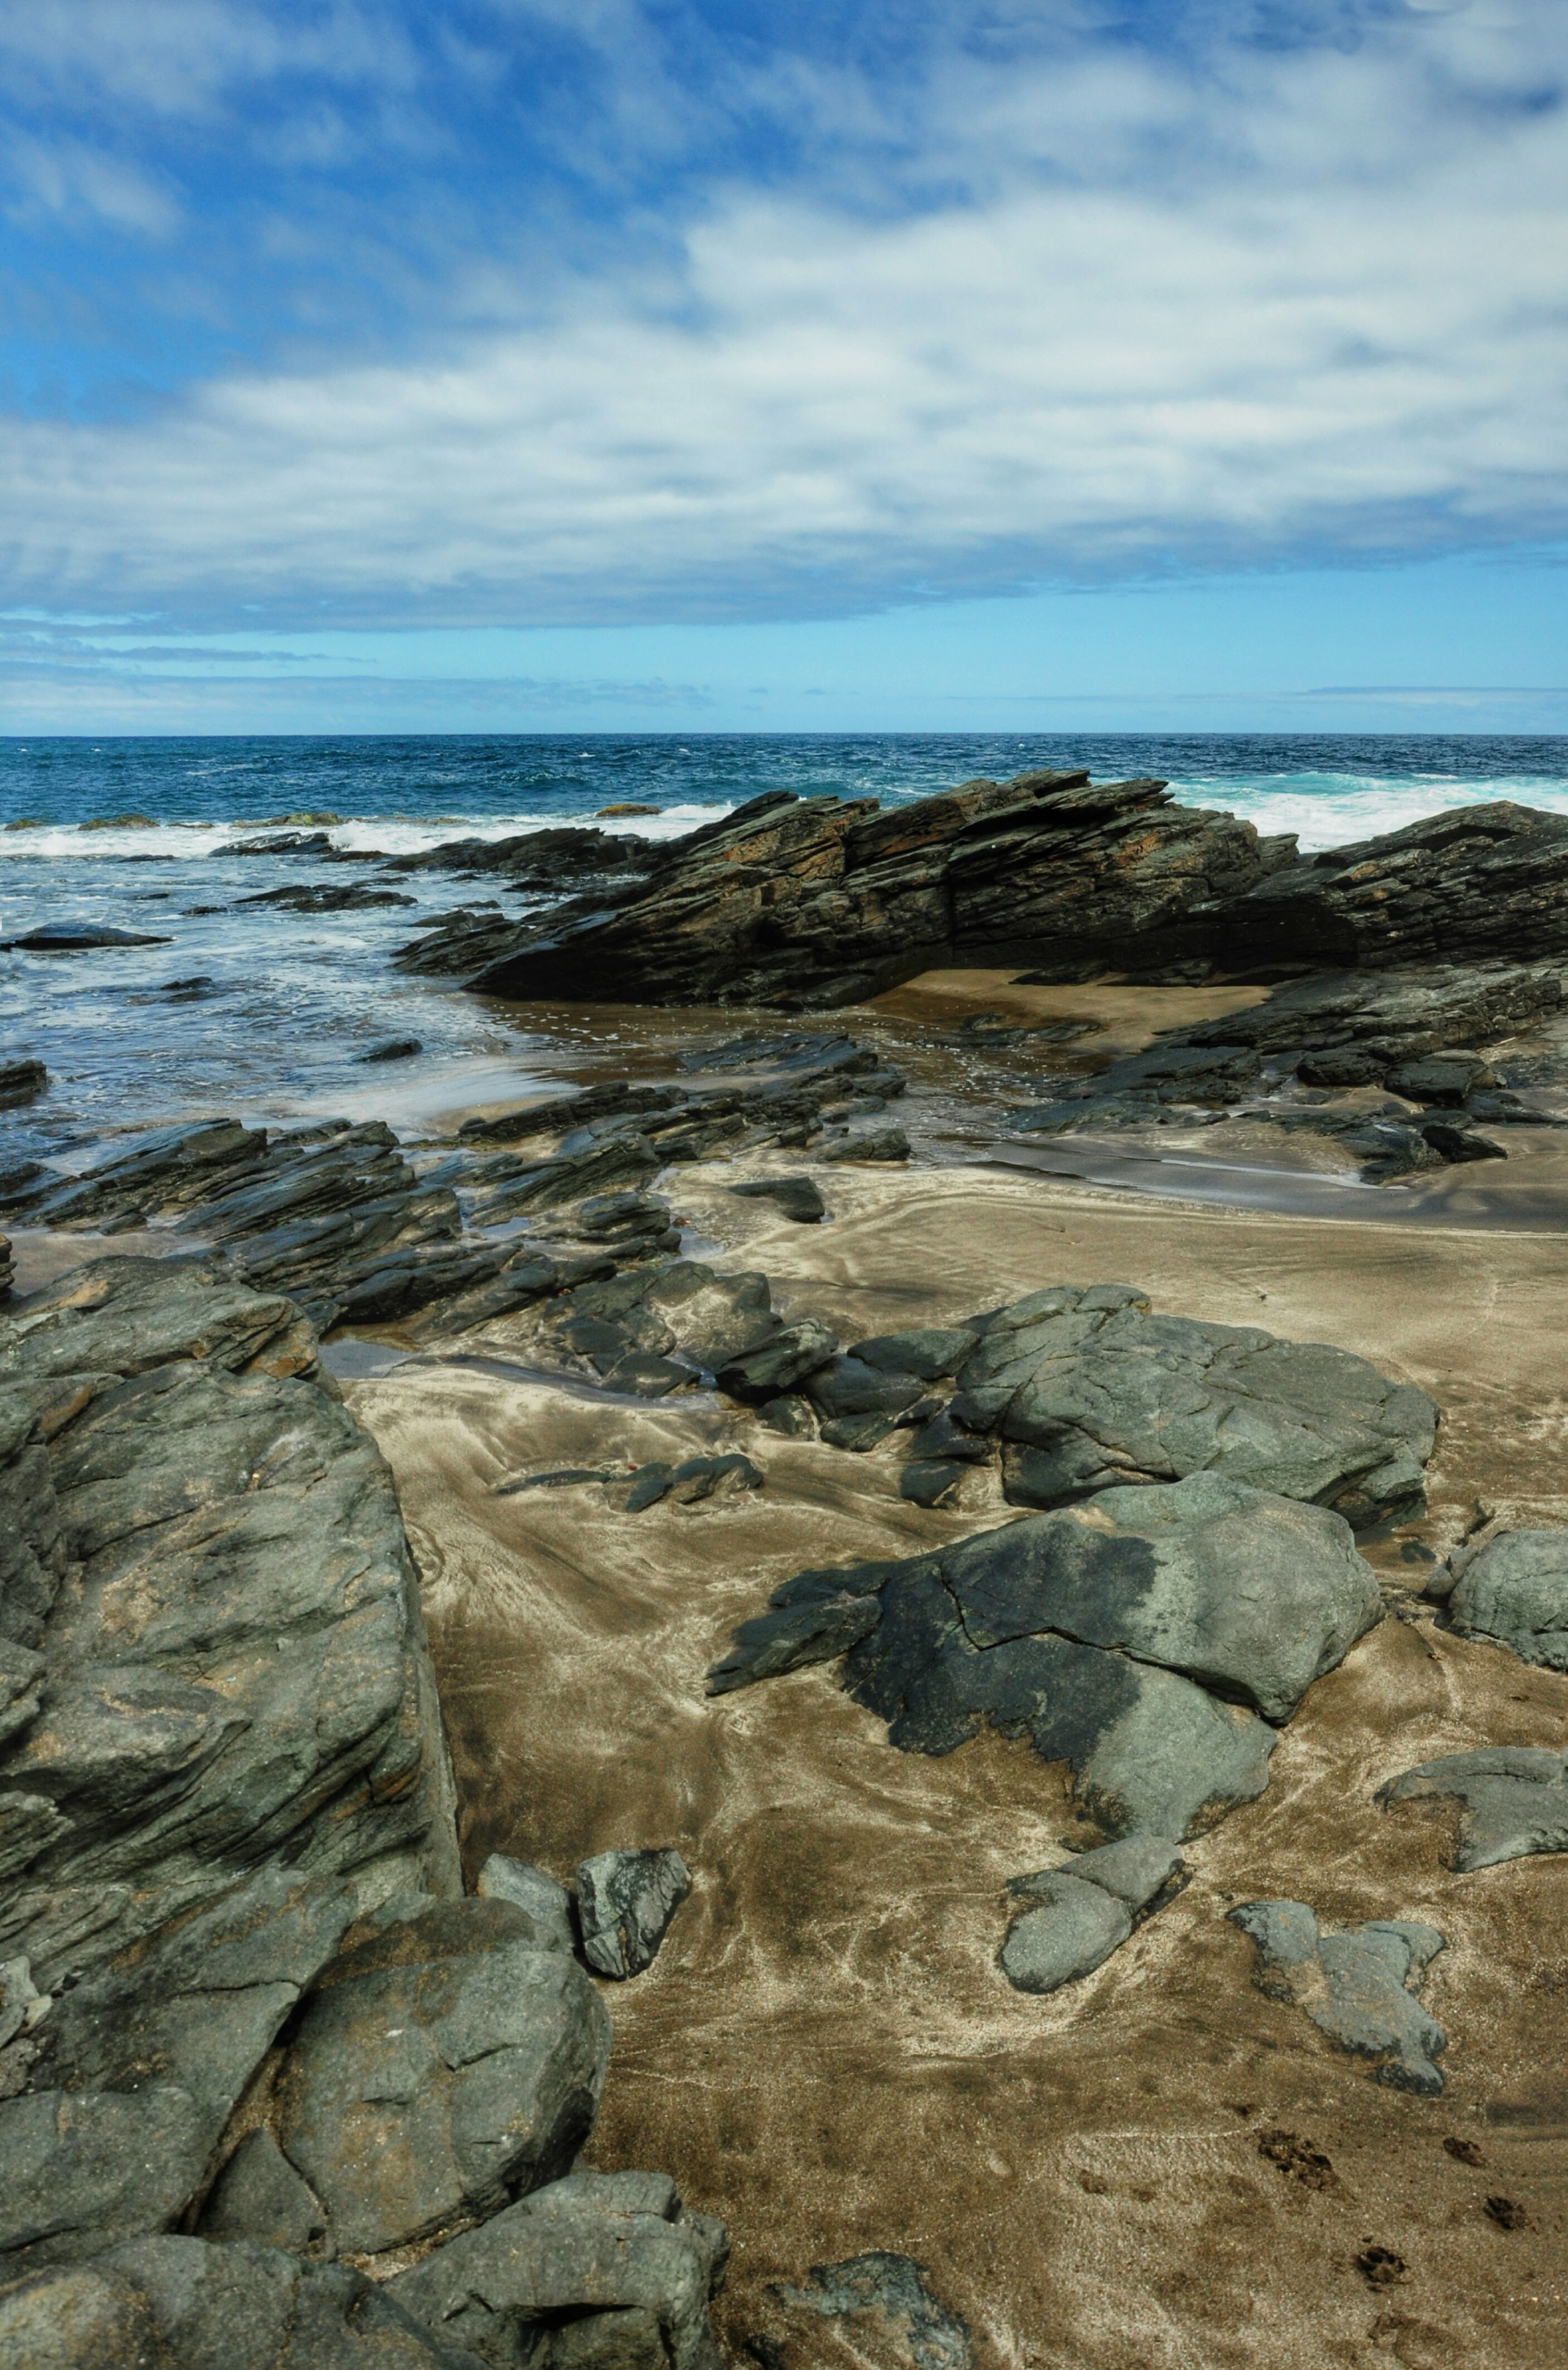 sea, sky, water, horizon over water, scenics, cloud - sky, tranquility, tranquil scene, rock - object, beauty in nature, beach, nature, shore, rock formation, cloud, cloudy, rock, idyllic, day, outdoors